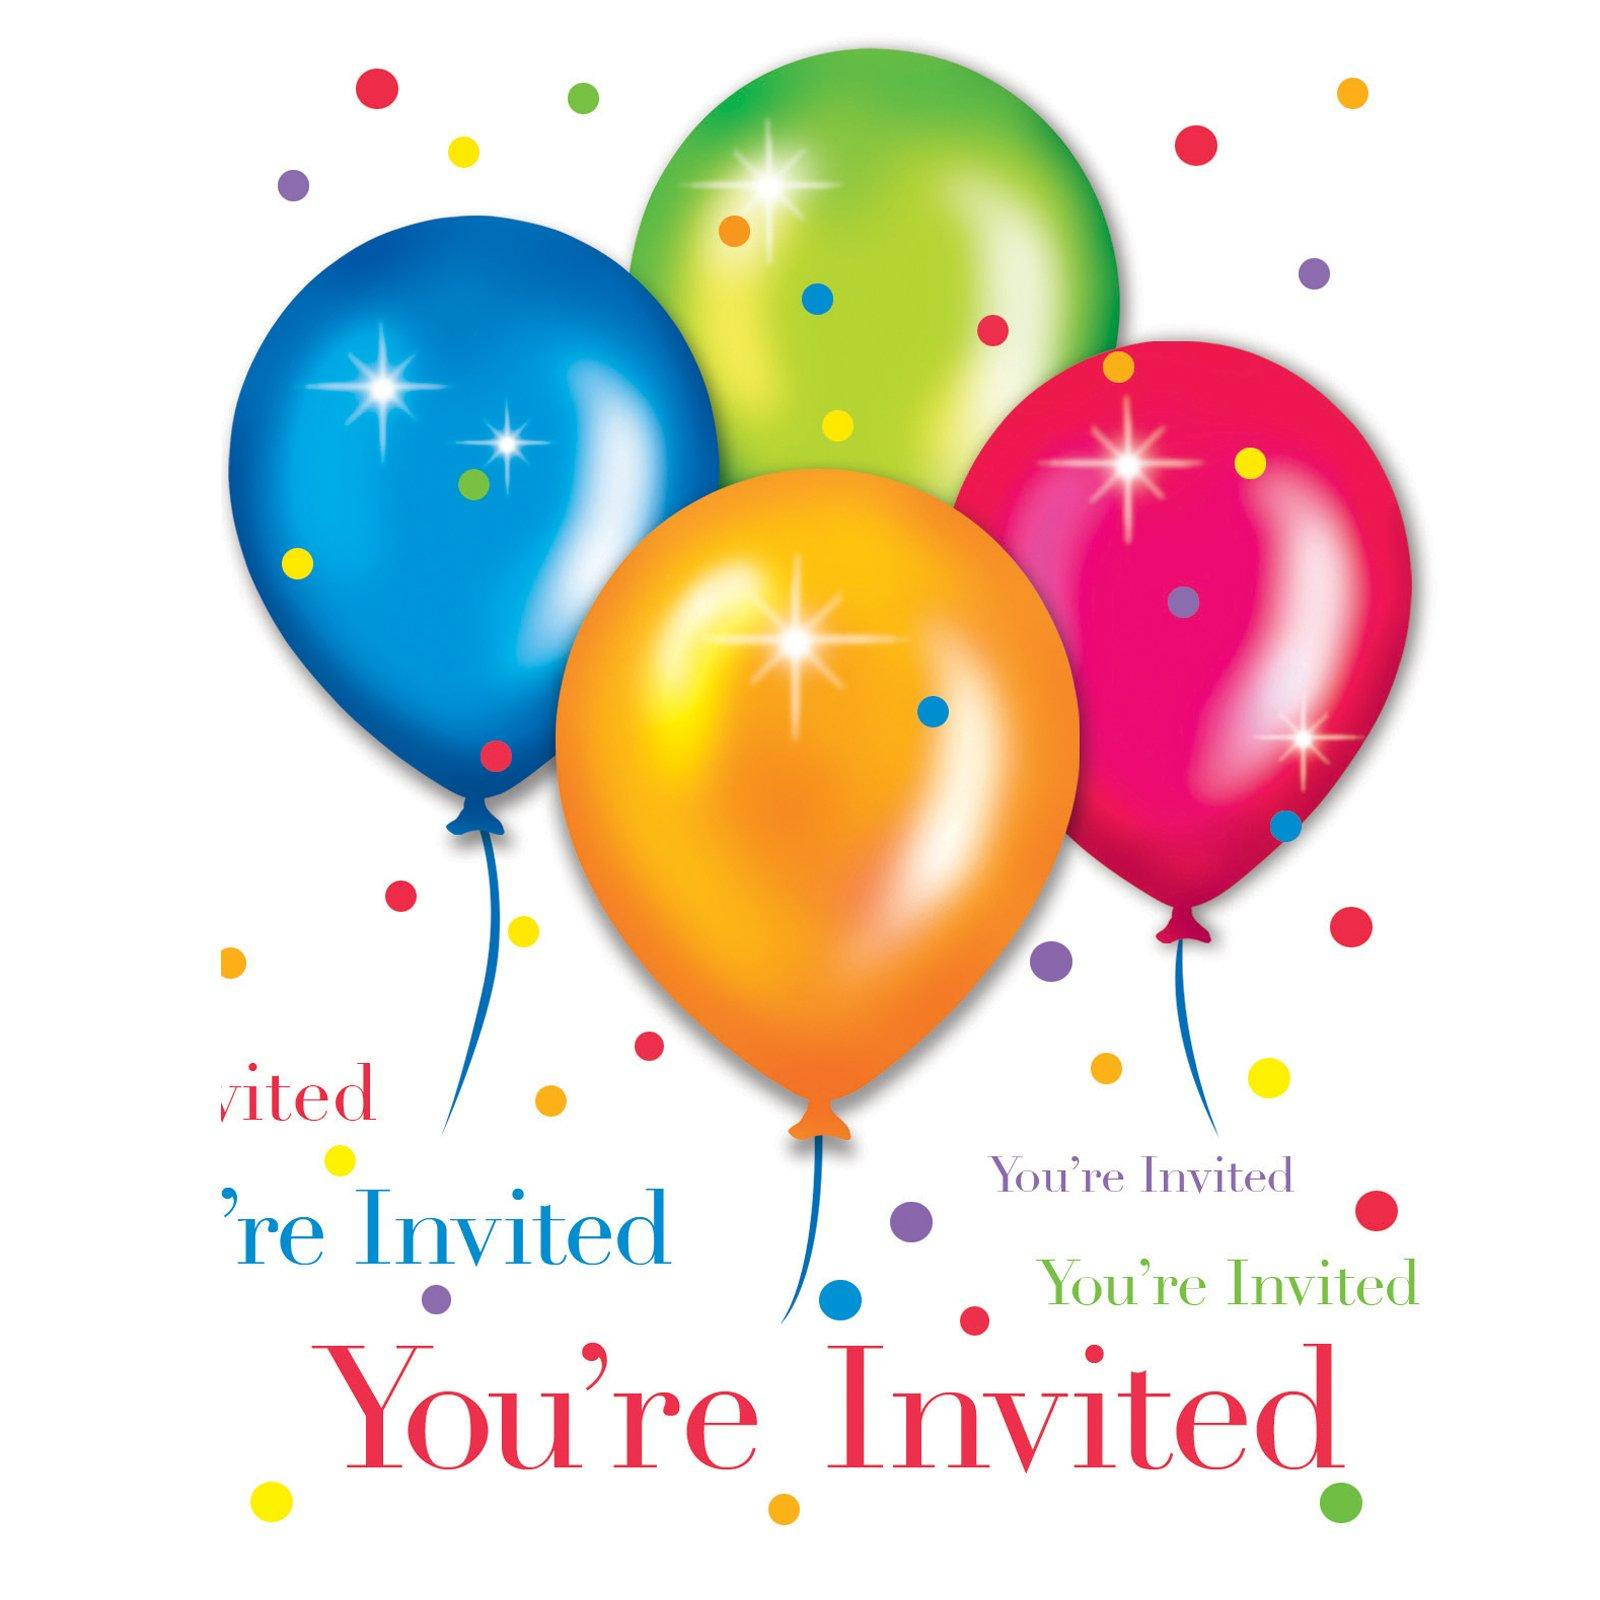 Celebration clipart invitation Best collection Clipart party The